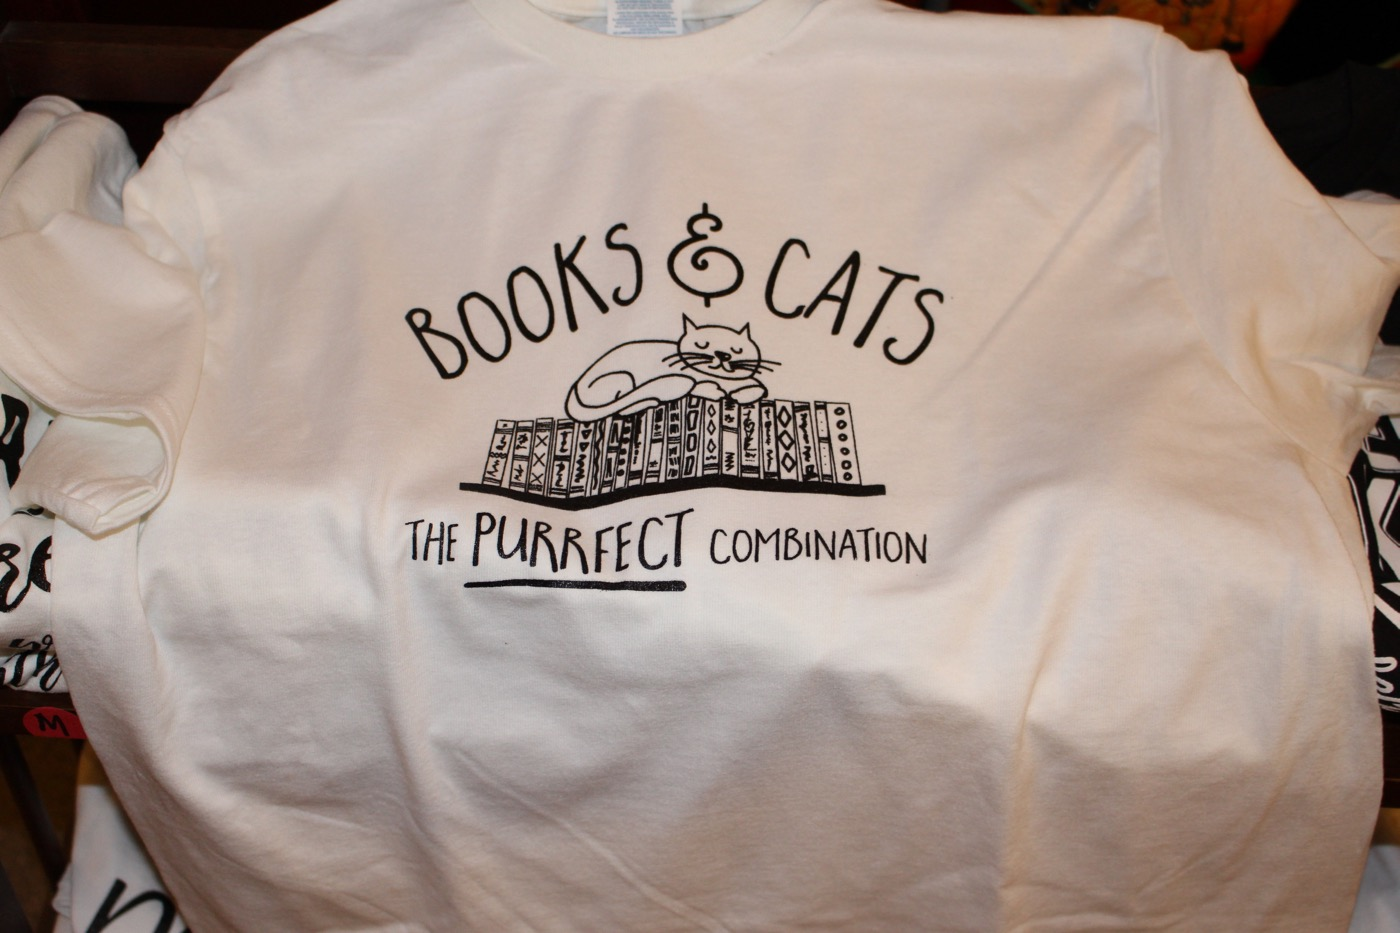 TEES FOR BOOKLOVERS!